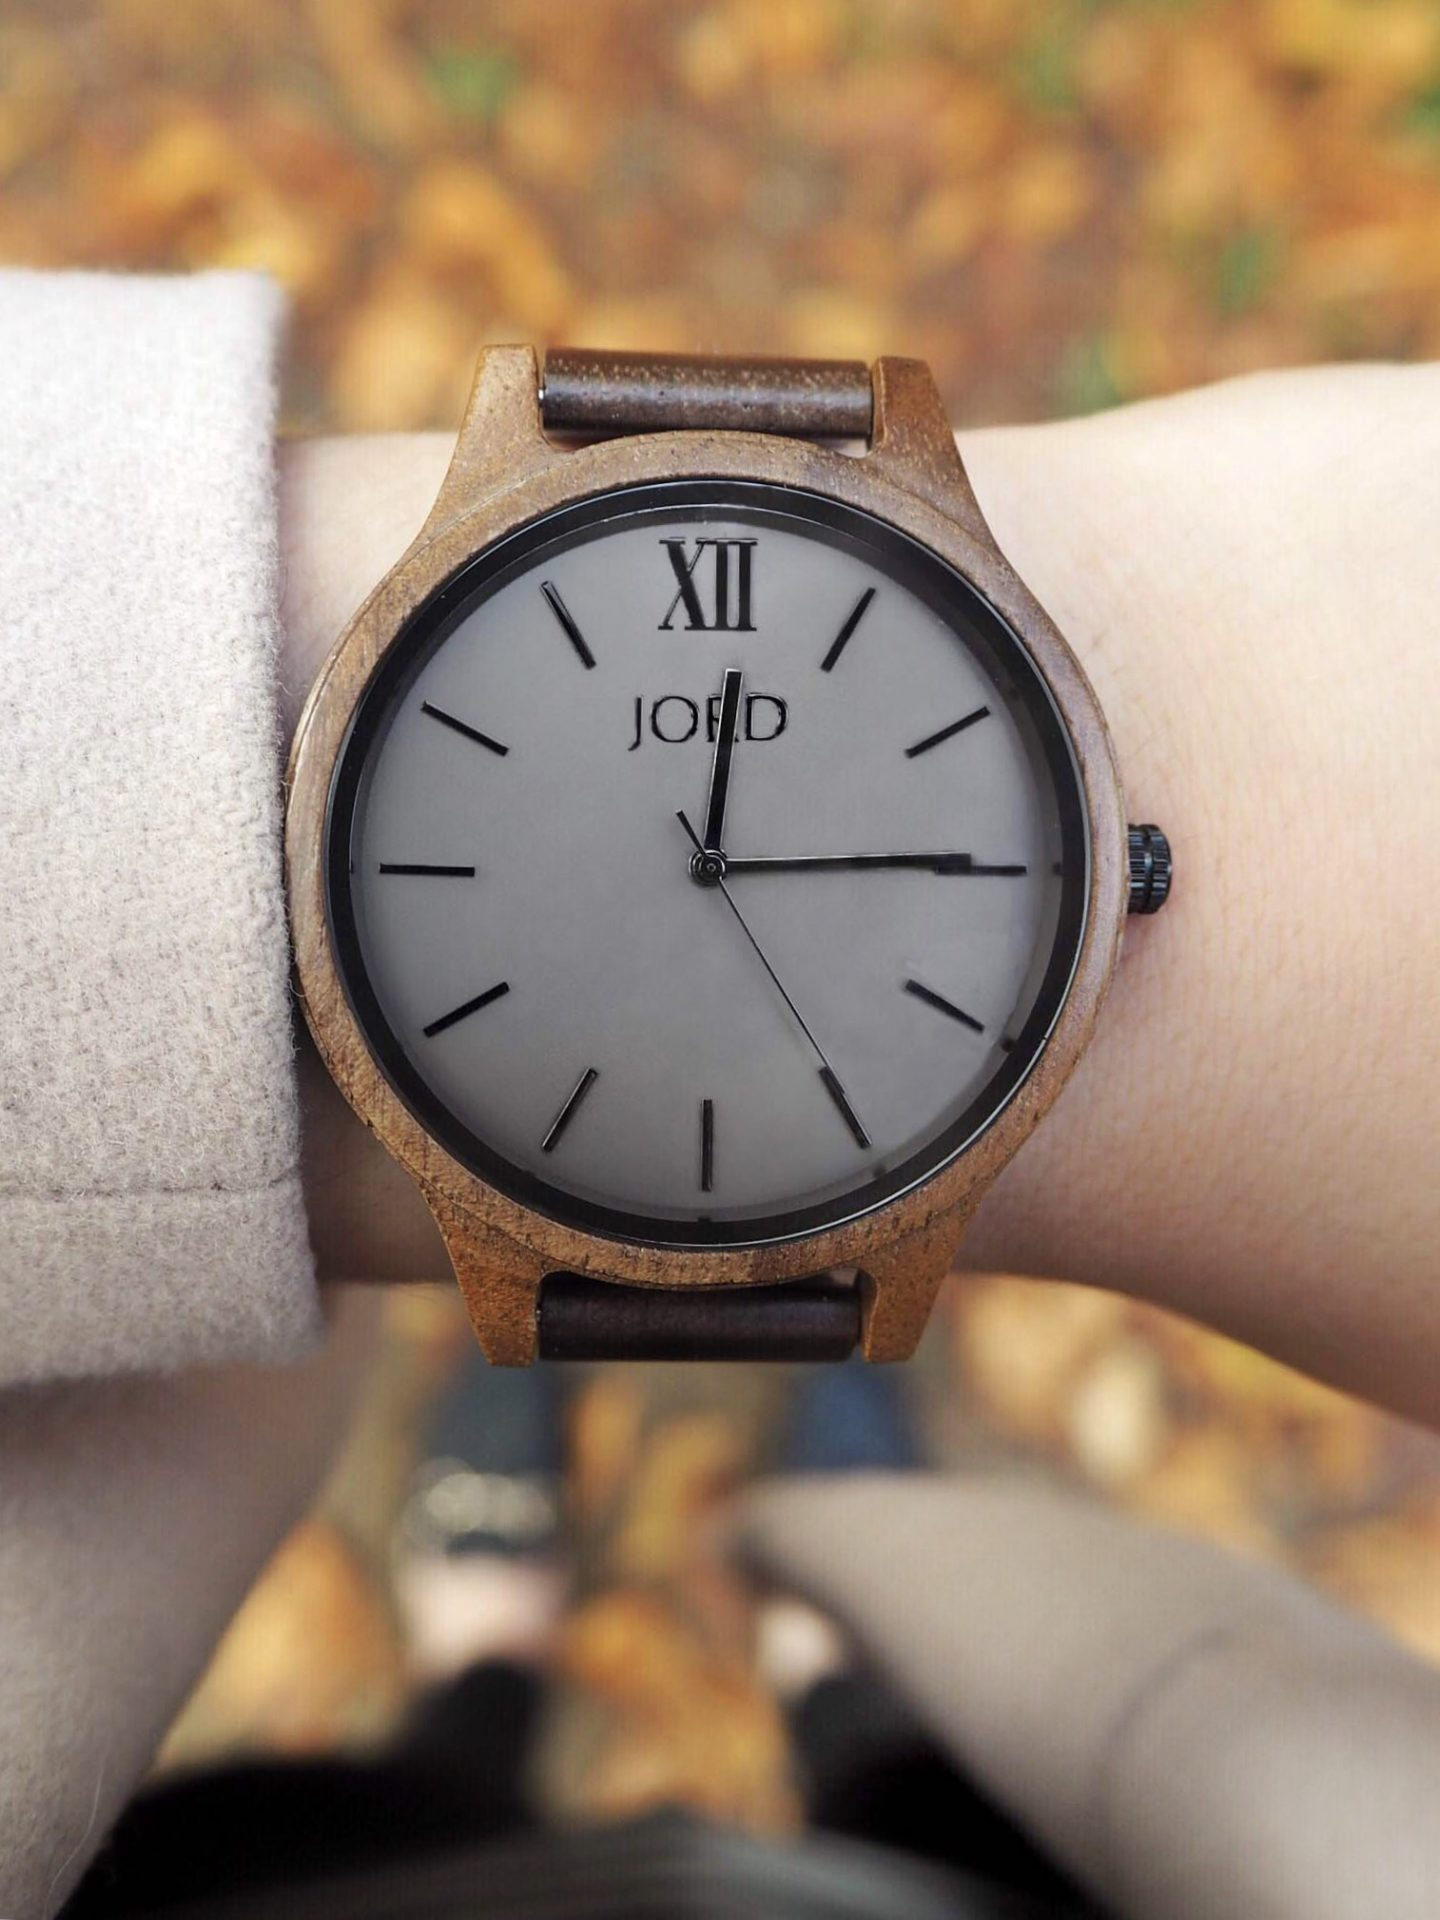 Time Flies: Life Update & Jord Watch Giveaway